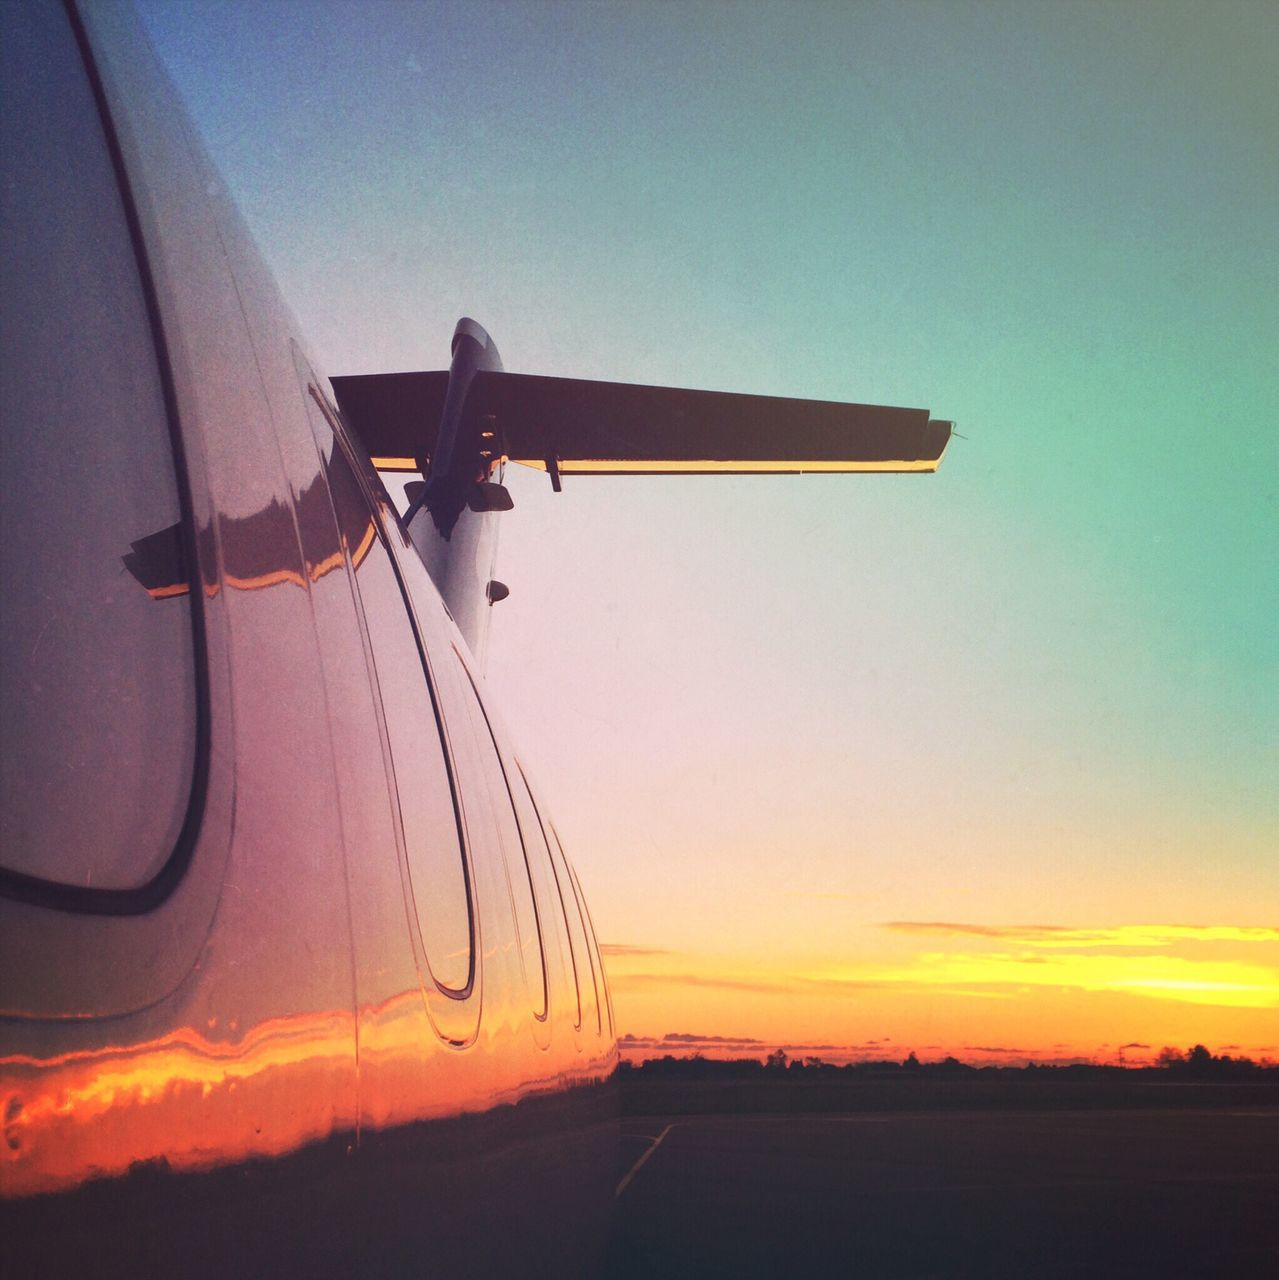 airplane, transportation, air vehicle, mode of transport, journey, flying, travel, sunset, sky, no people, outdoors, mid-air, nature, day, airplane wing, close-up